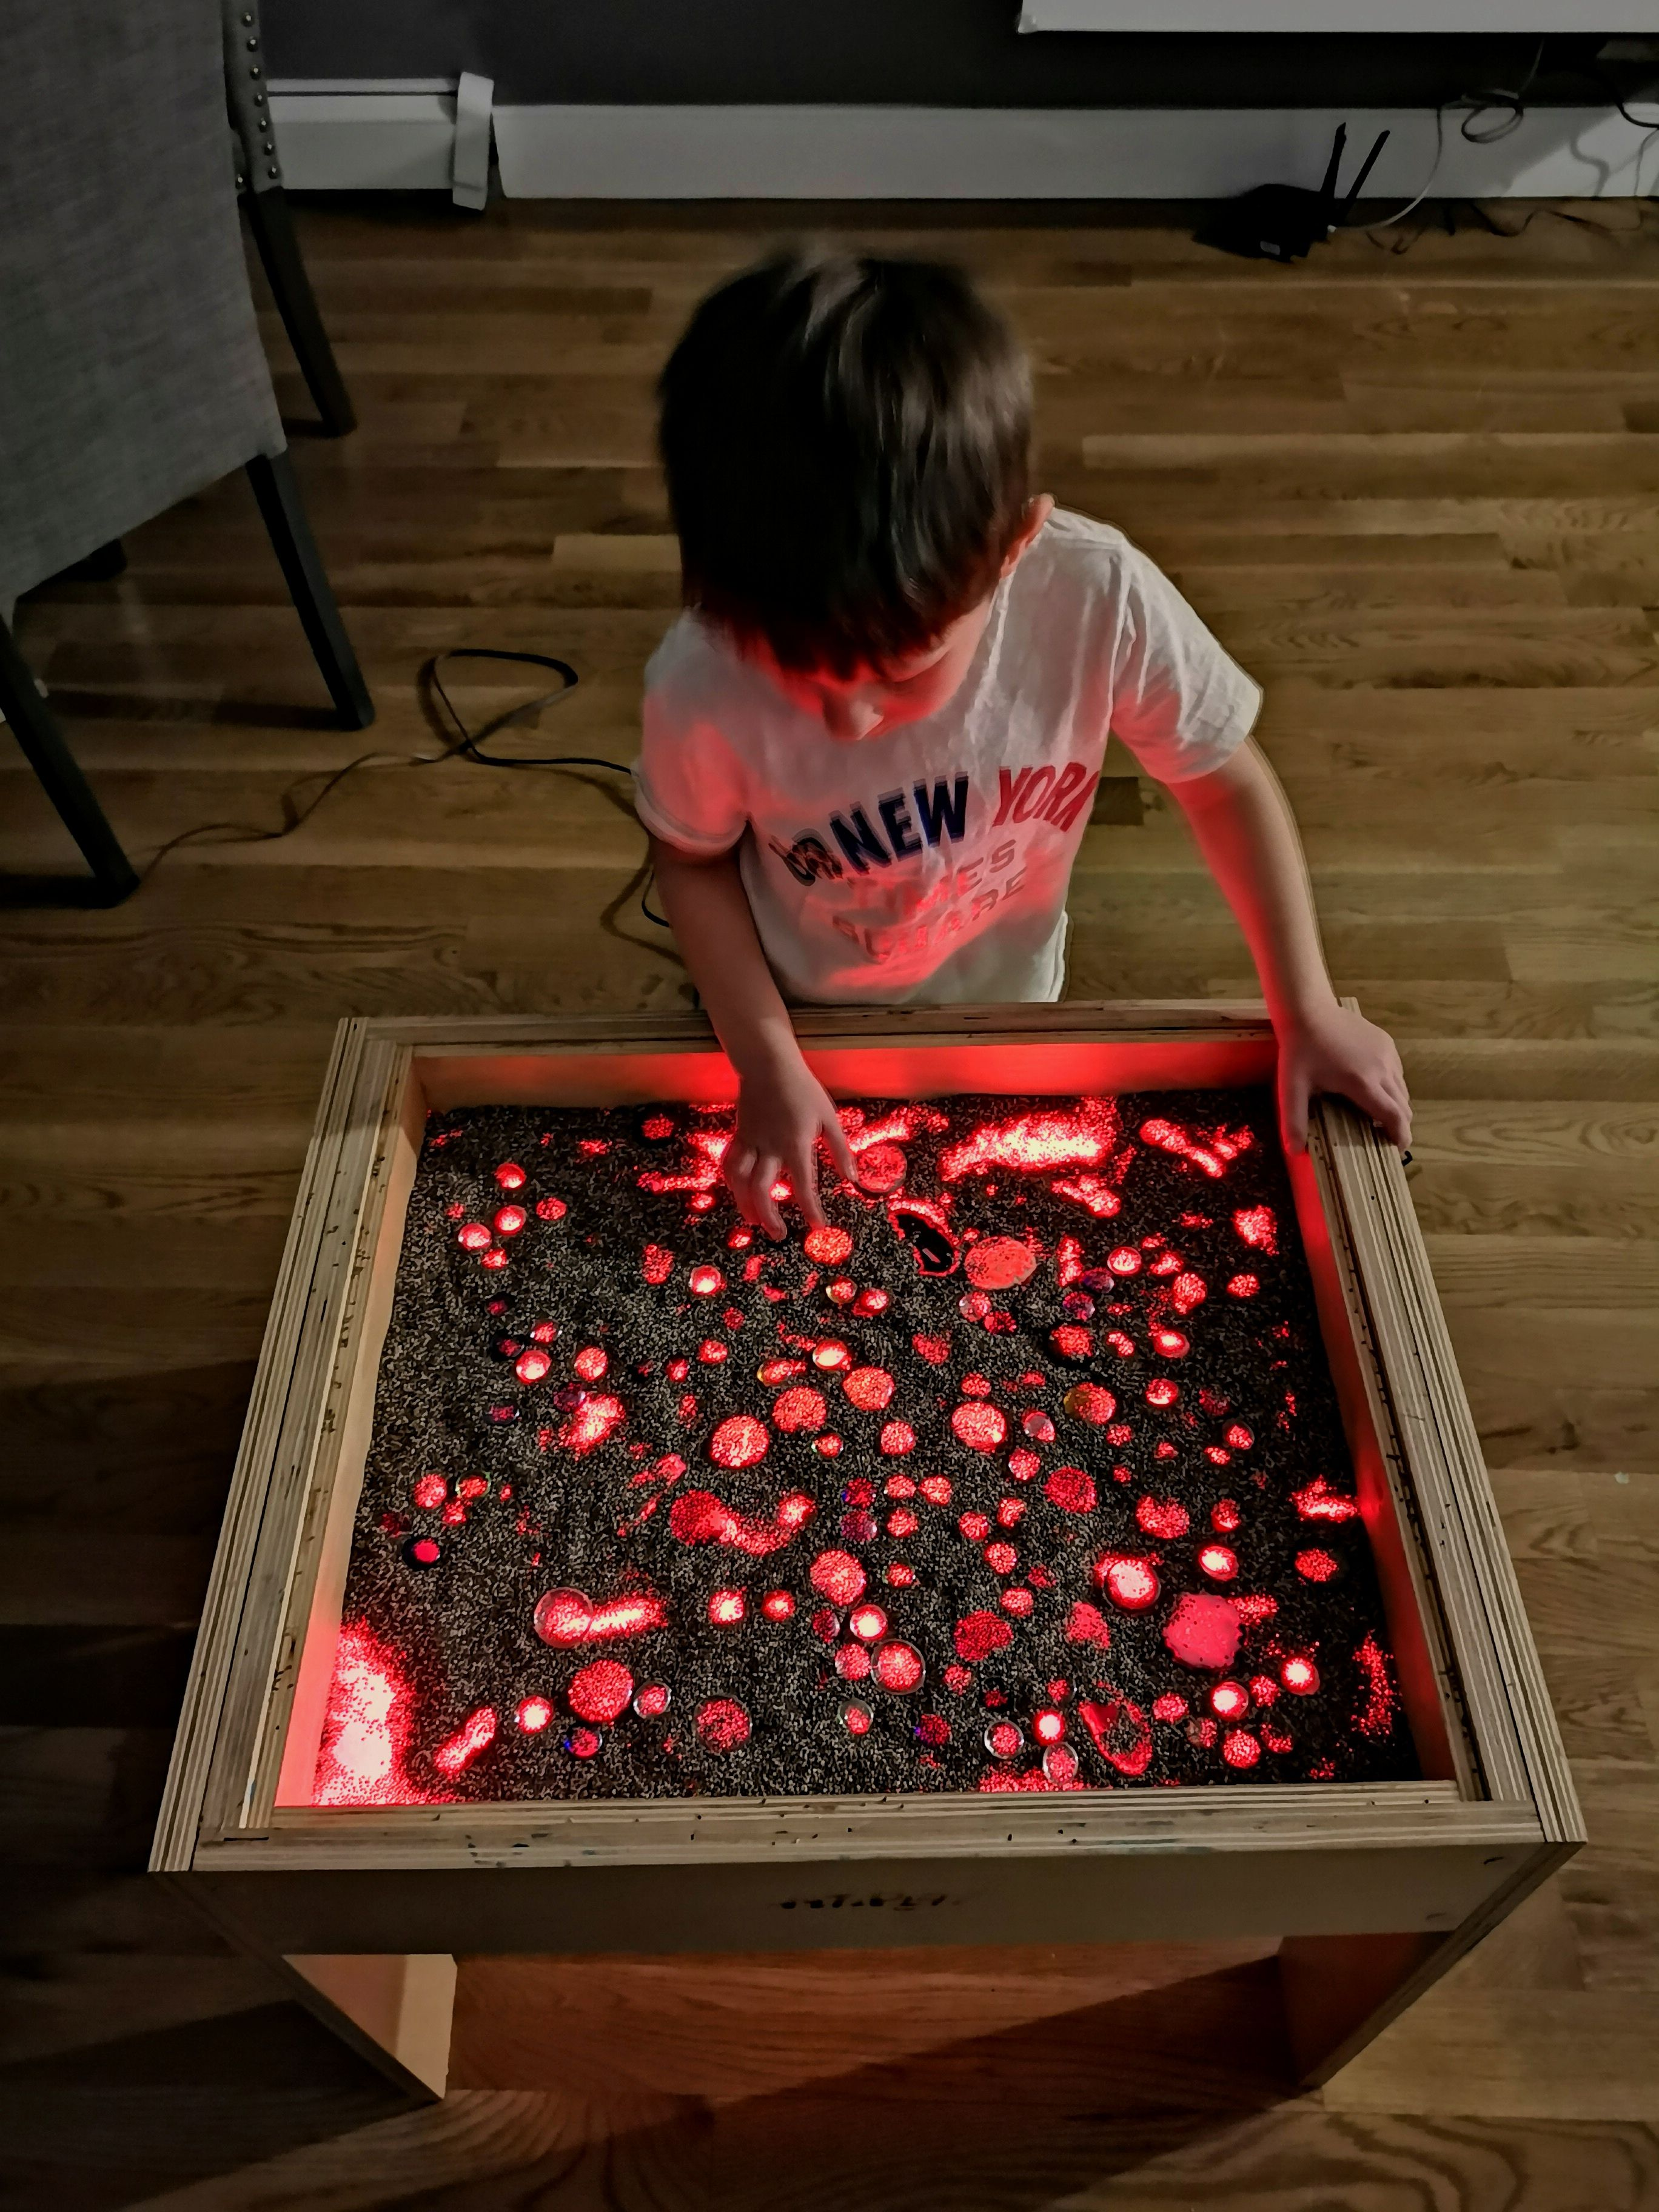 Sand Play with LED Red Backlight at our Art Light Activity